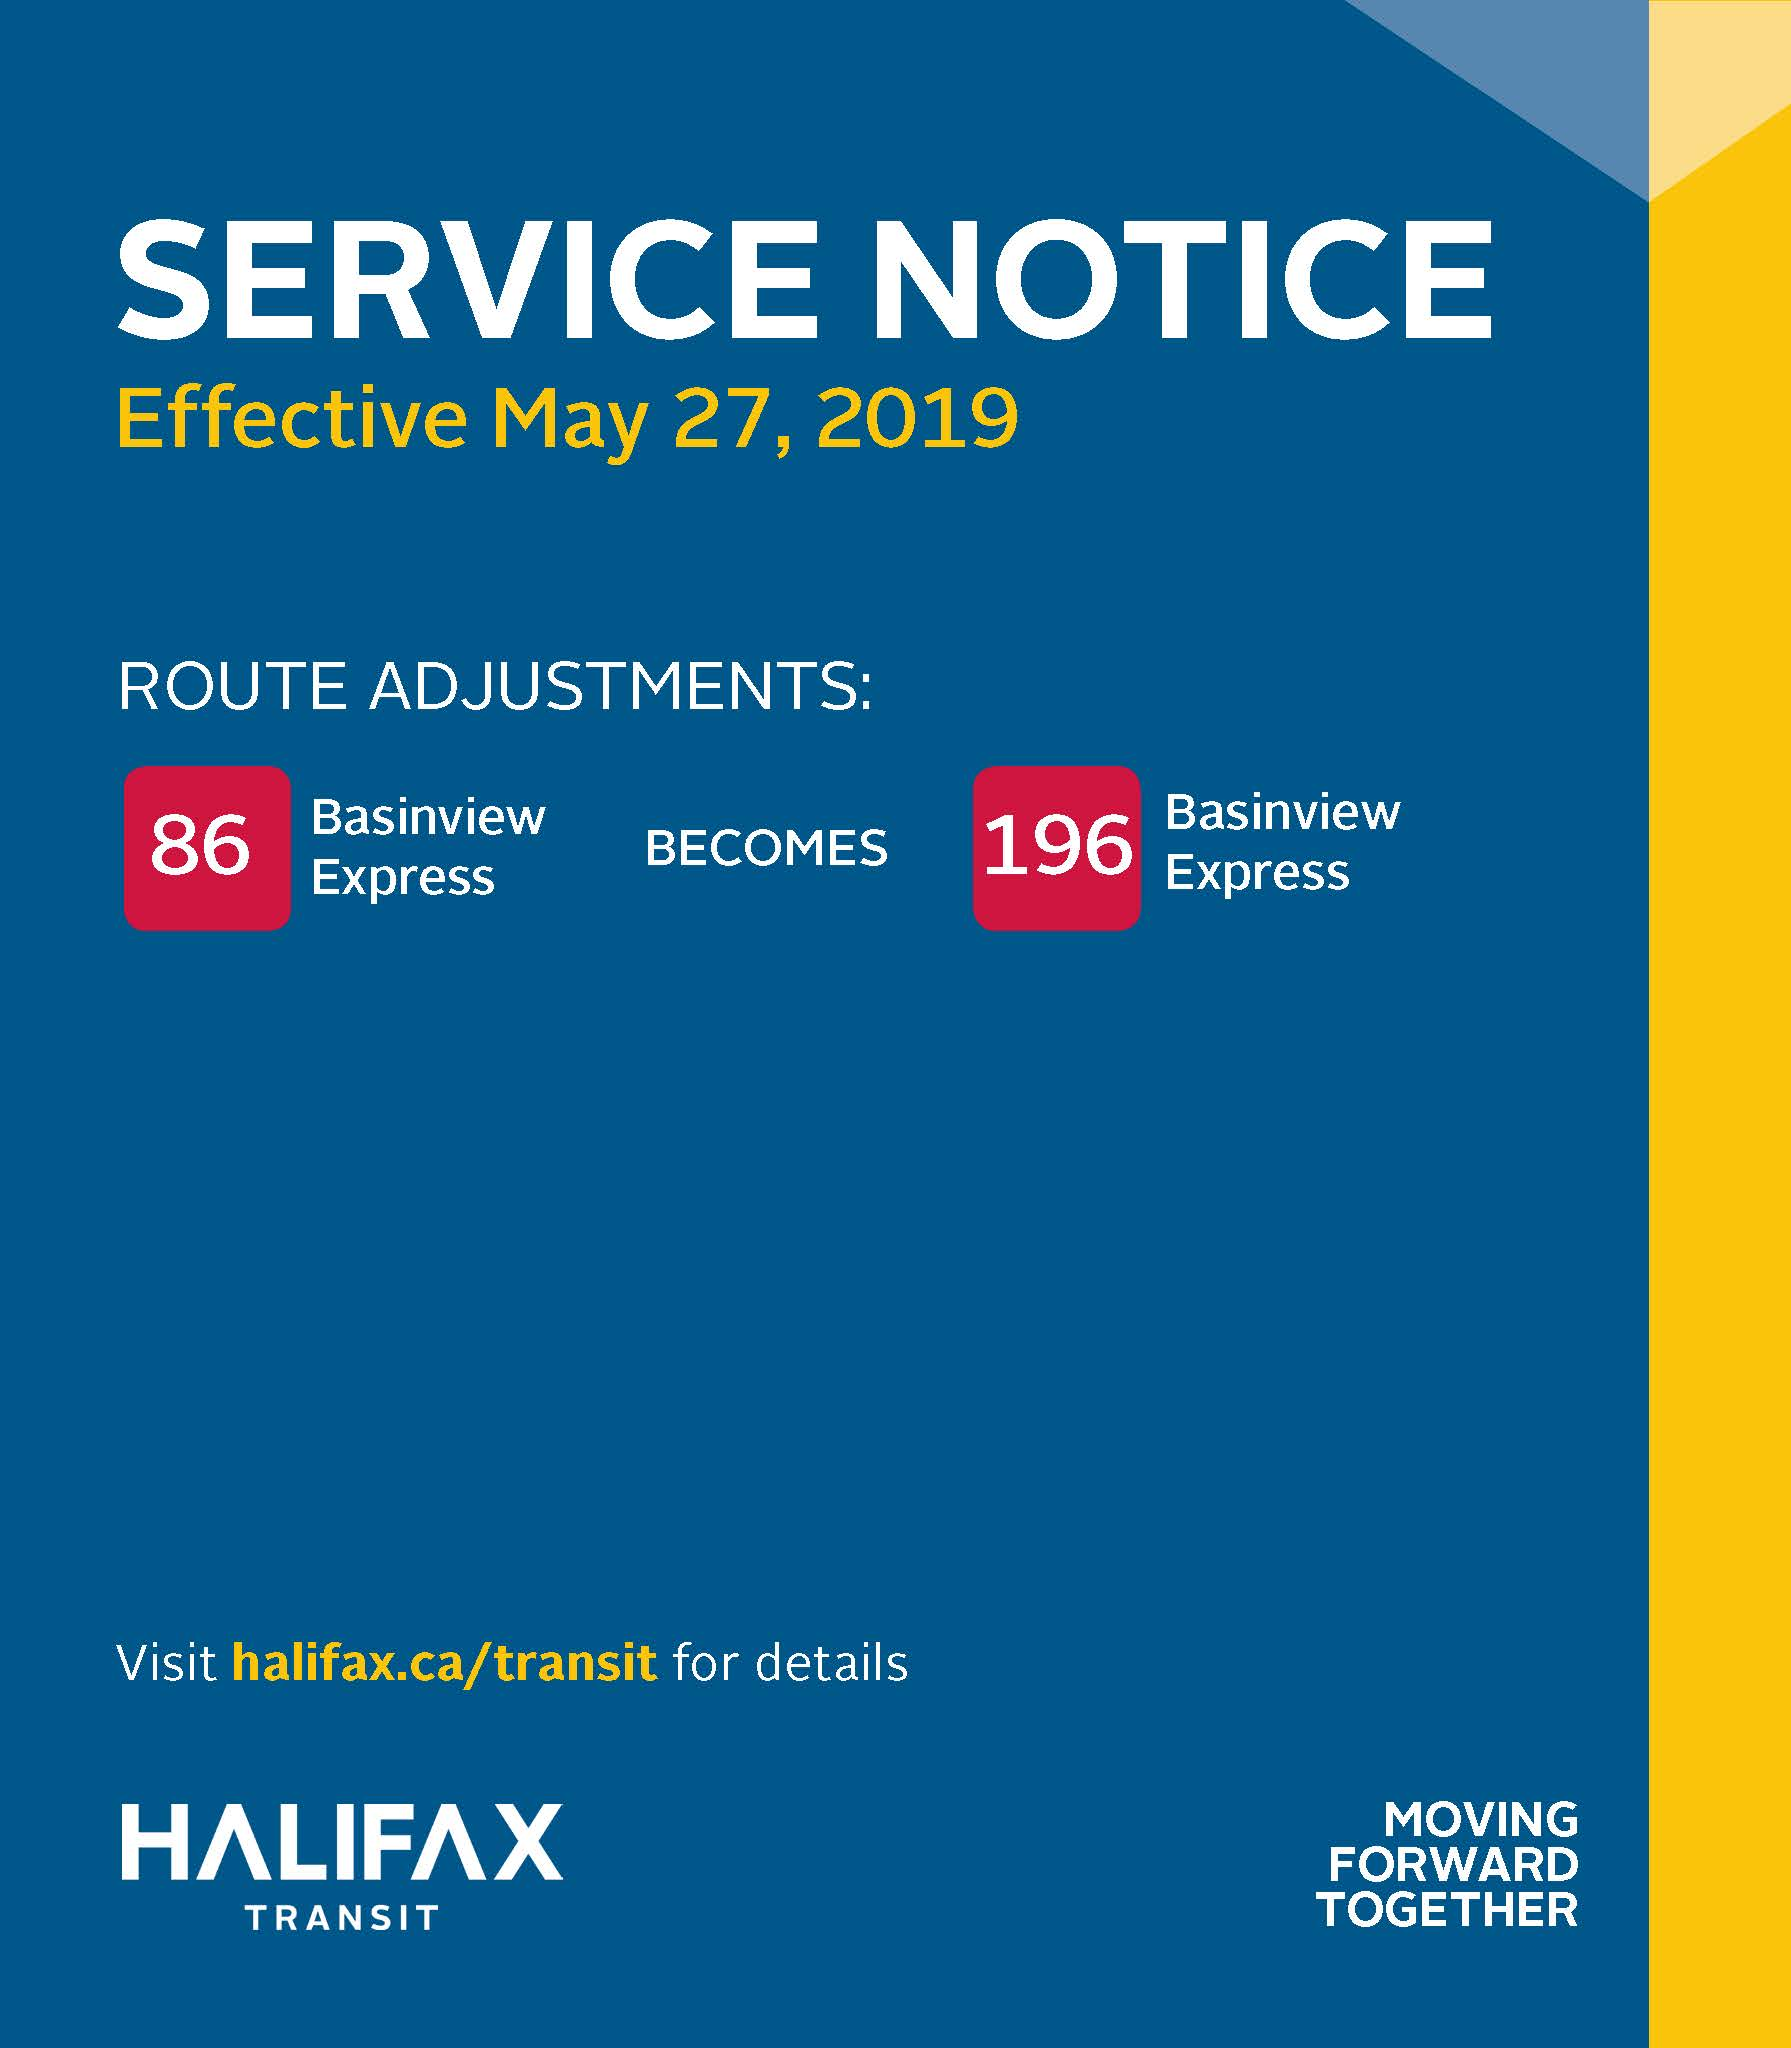 Service Changes coming May 27 - diagram of upcoming changes to service routes